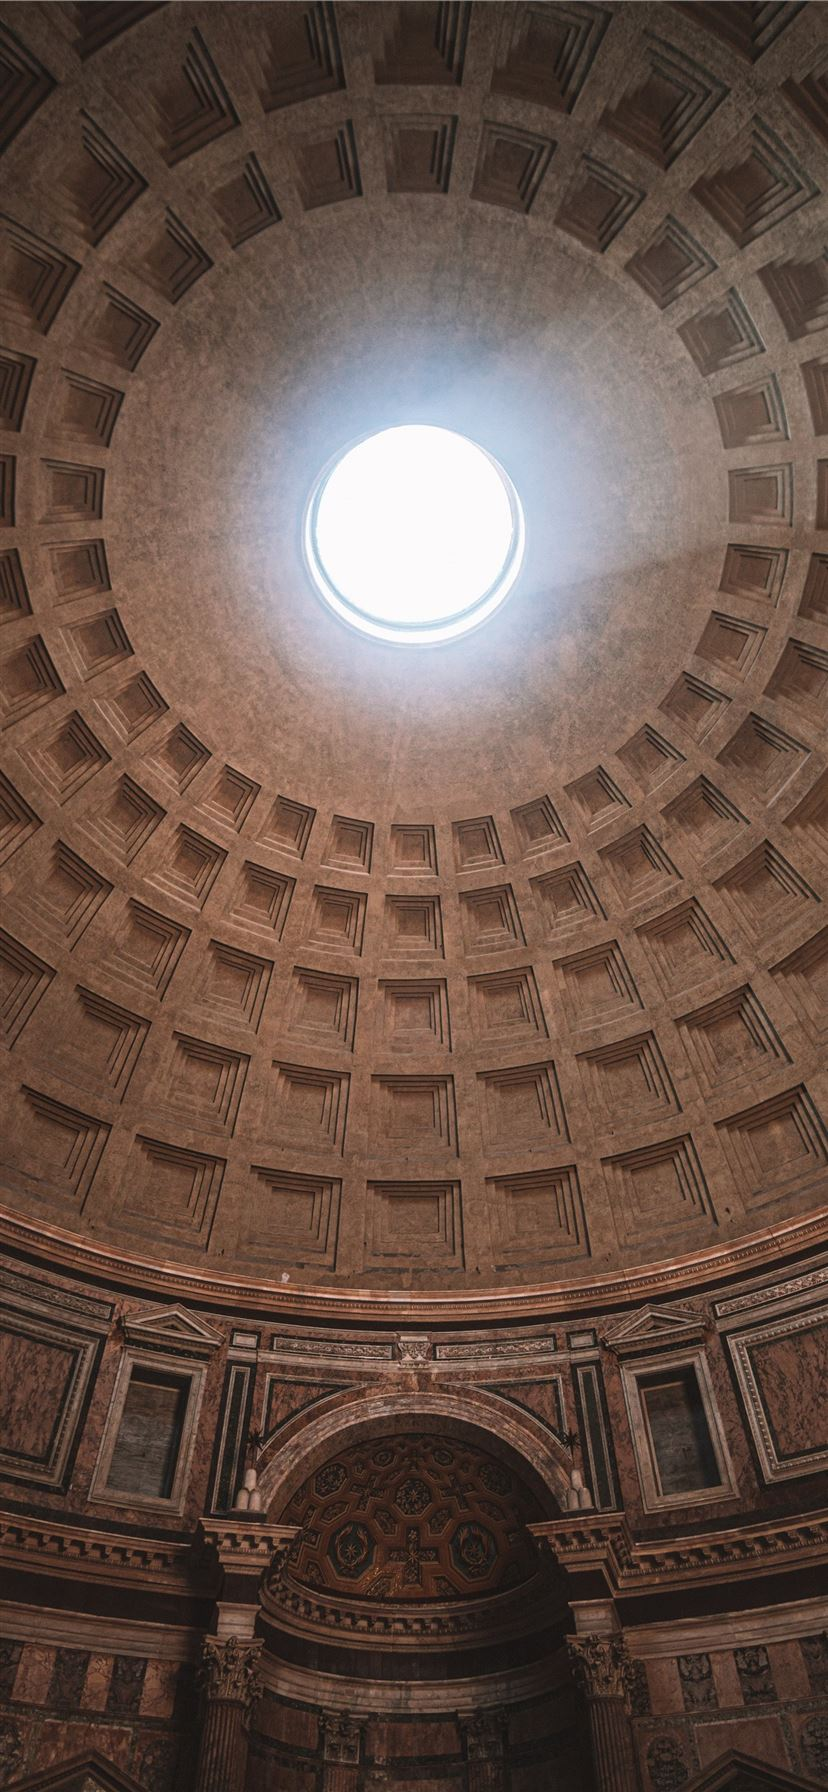 Inside Pantheon Temple In Rome Italy Iphone 11 Wallpapers